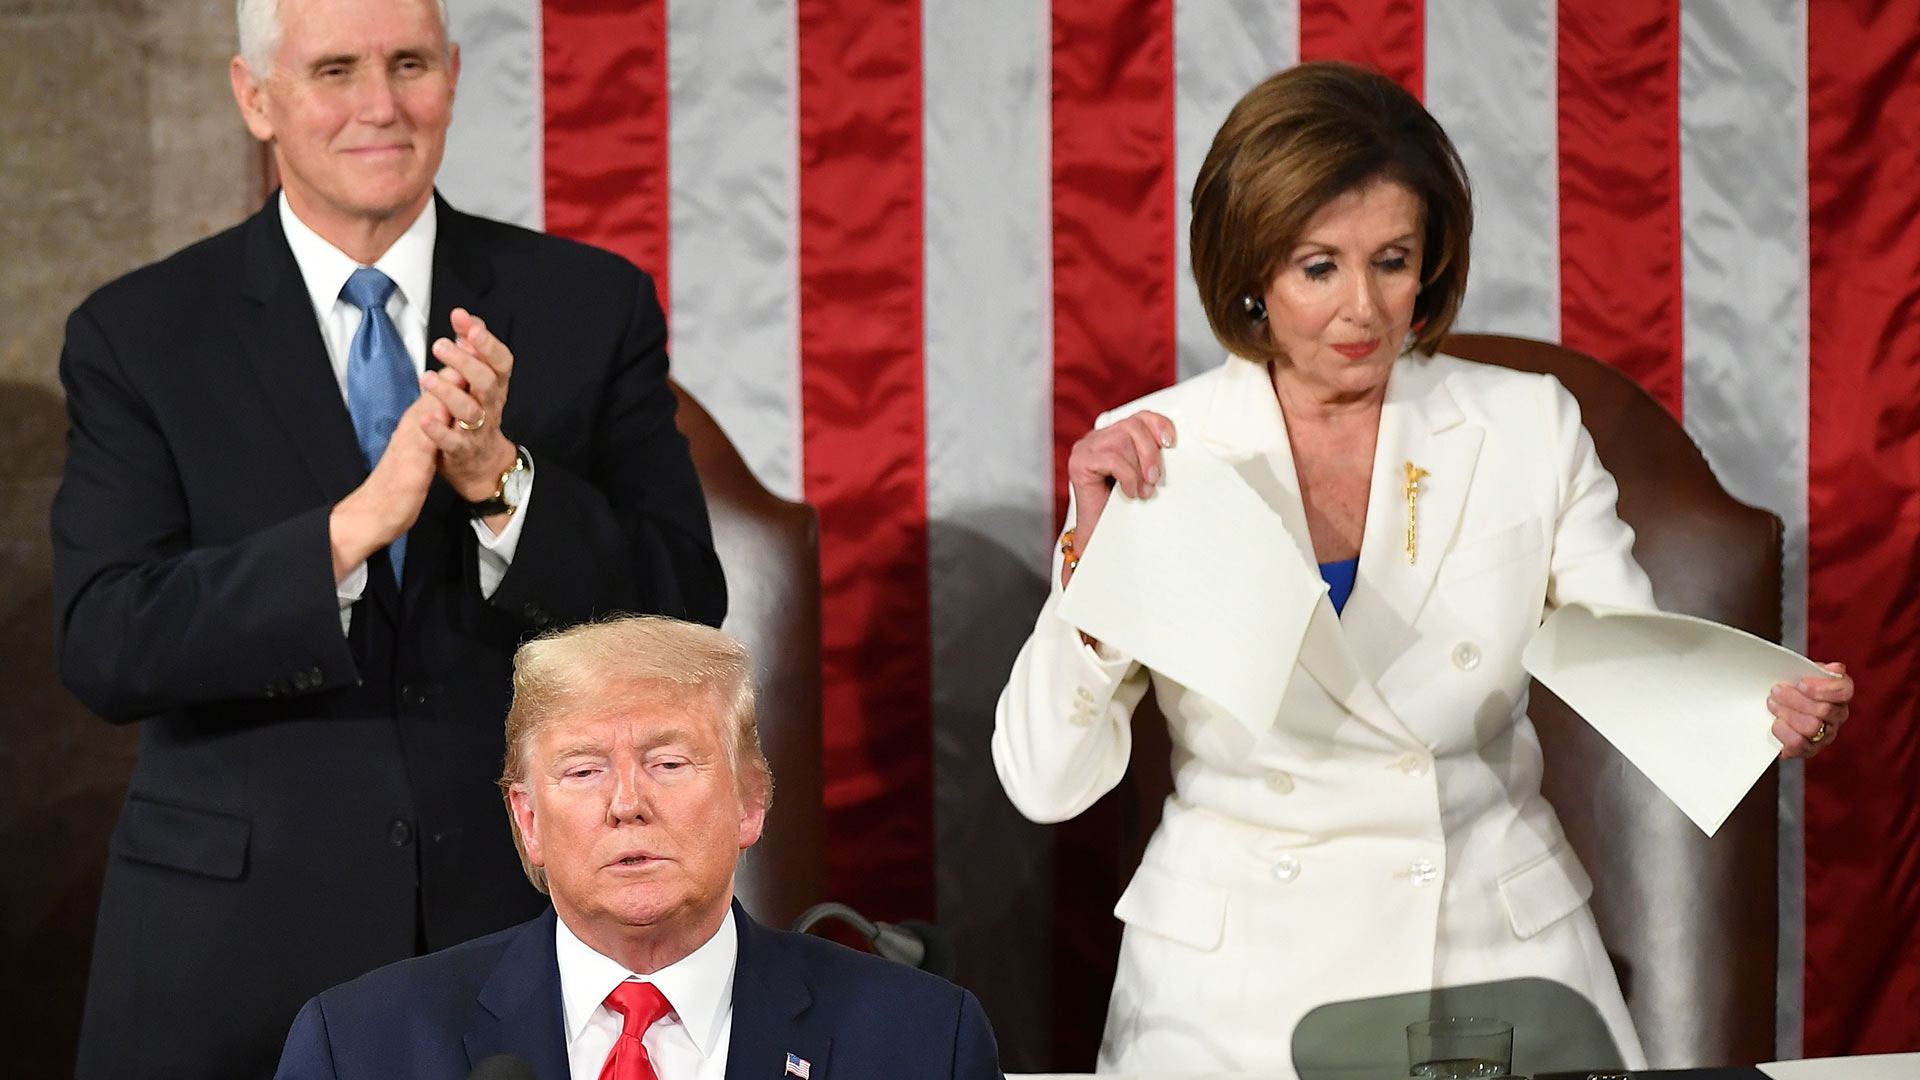 Nancy Pelosi Rips SOTU (Speaker of the House Nancy Pelosi rips up her copy of President Trump's State of the Union speech after Trump's remarks on Tuesday. Americans tend to fault the other side while giving their own partisans a pass for such actions, write Associate Professor Sarah E. Croco and undergraduate Jacob Silverman. (Mandel Ngan/AFP/Getty Images)